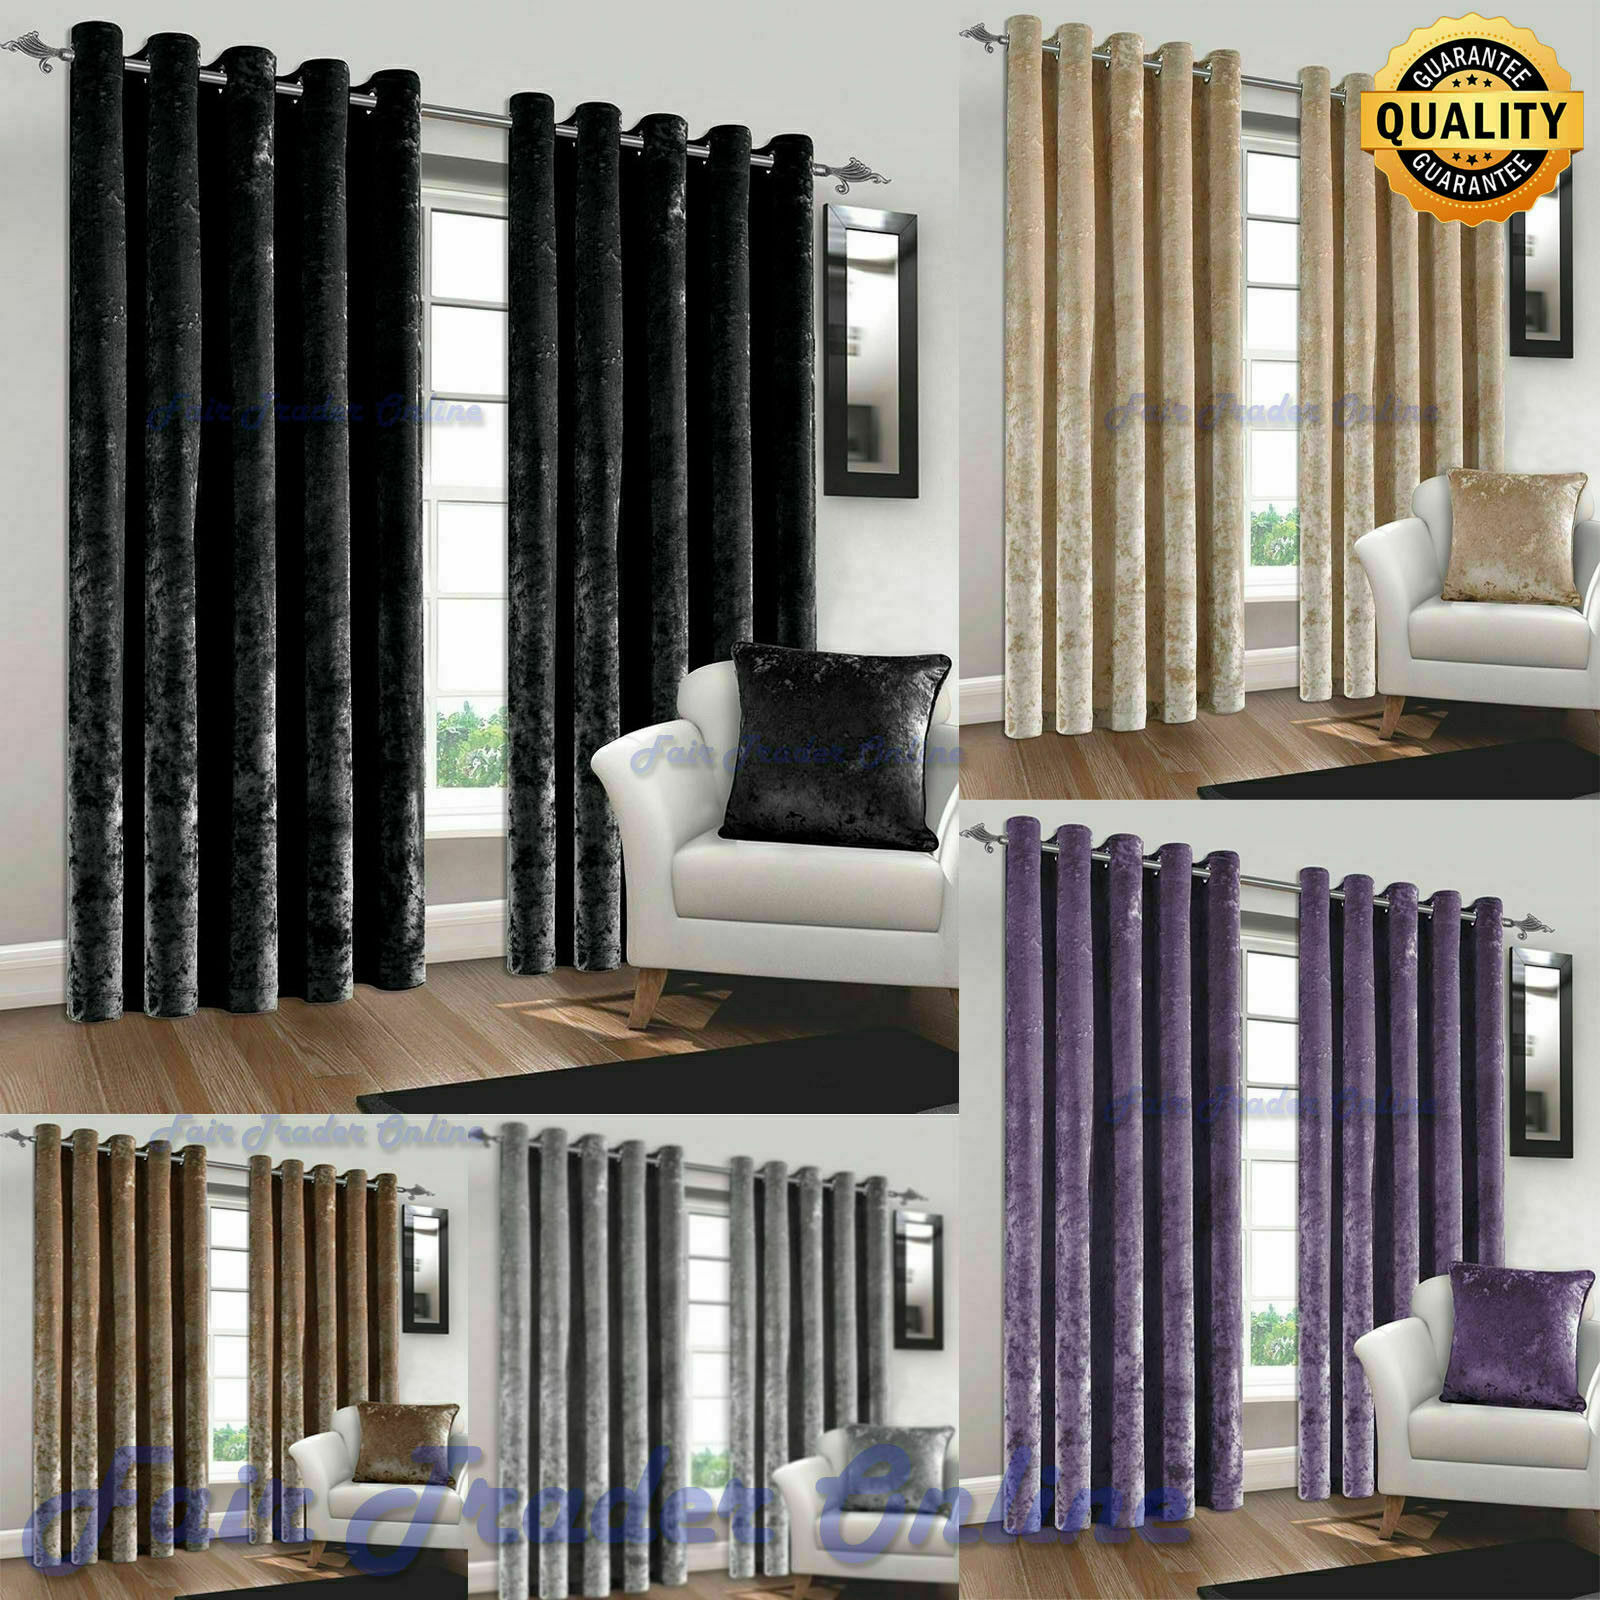 Luxury Crushed Velvet Curtains Pair Thick Ready Made Fully Lined Eyelet Ring Top